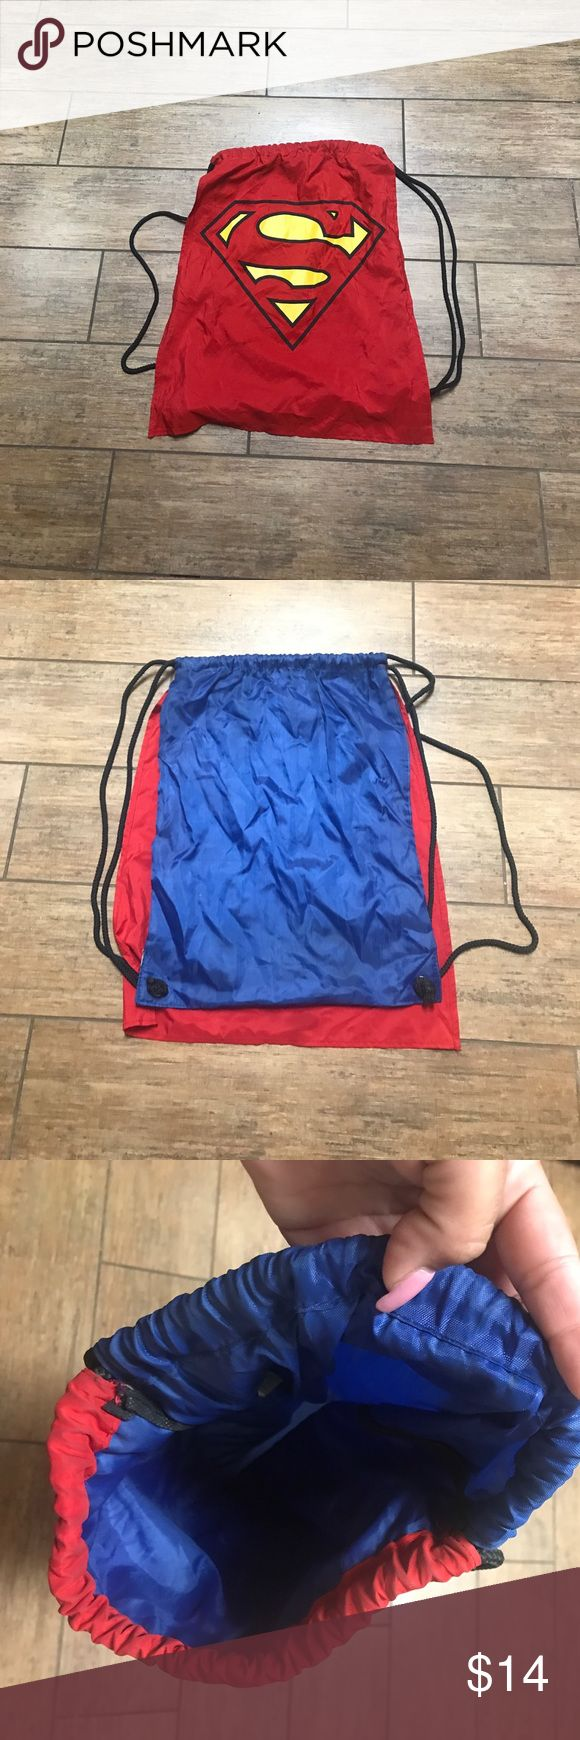 Superman Drawstring backpack Cute superman drawstring backpack. I used it for a Halloween costume one year. Bags Backpacks